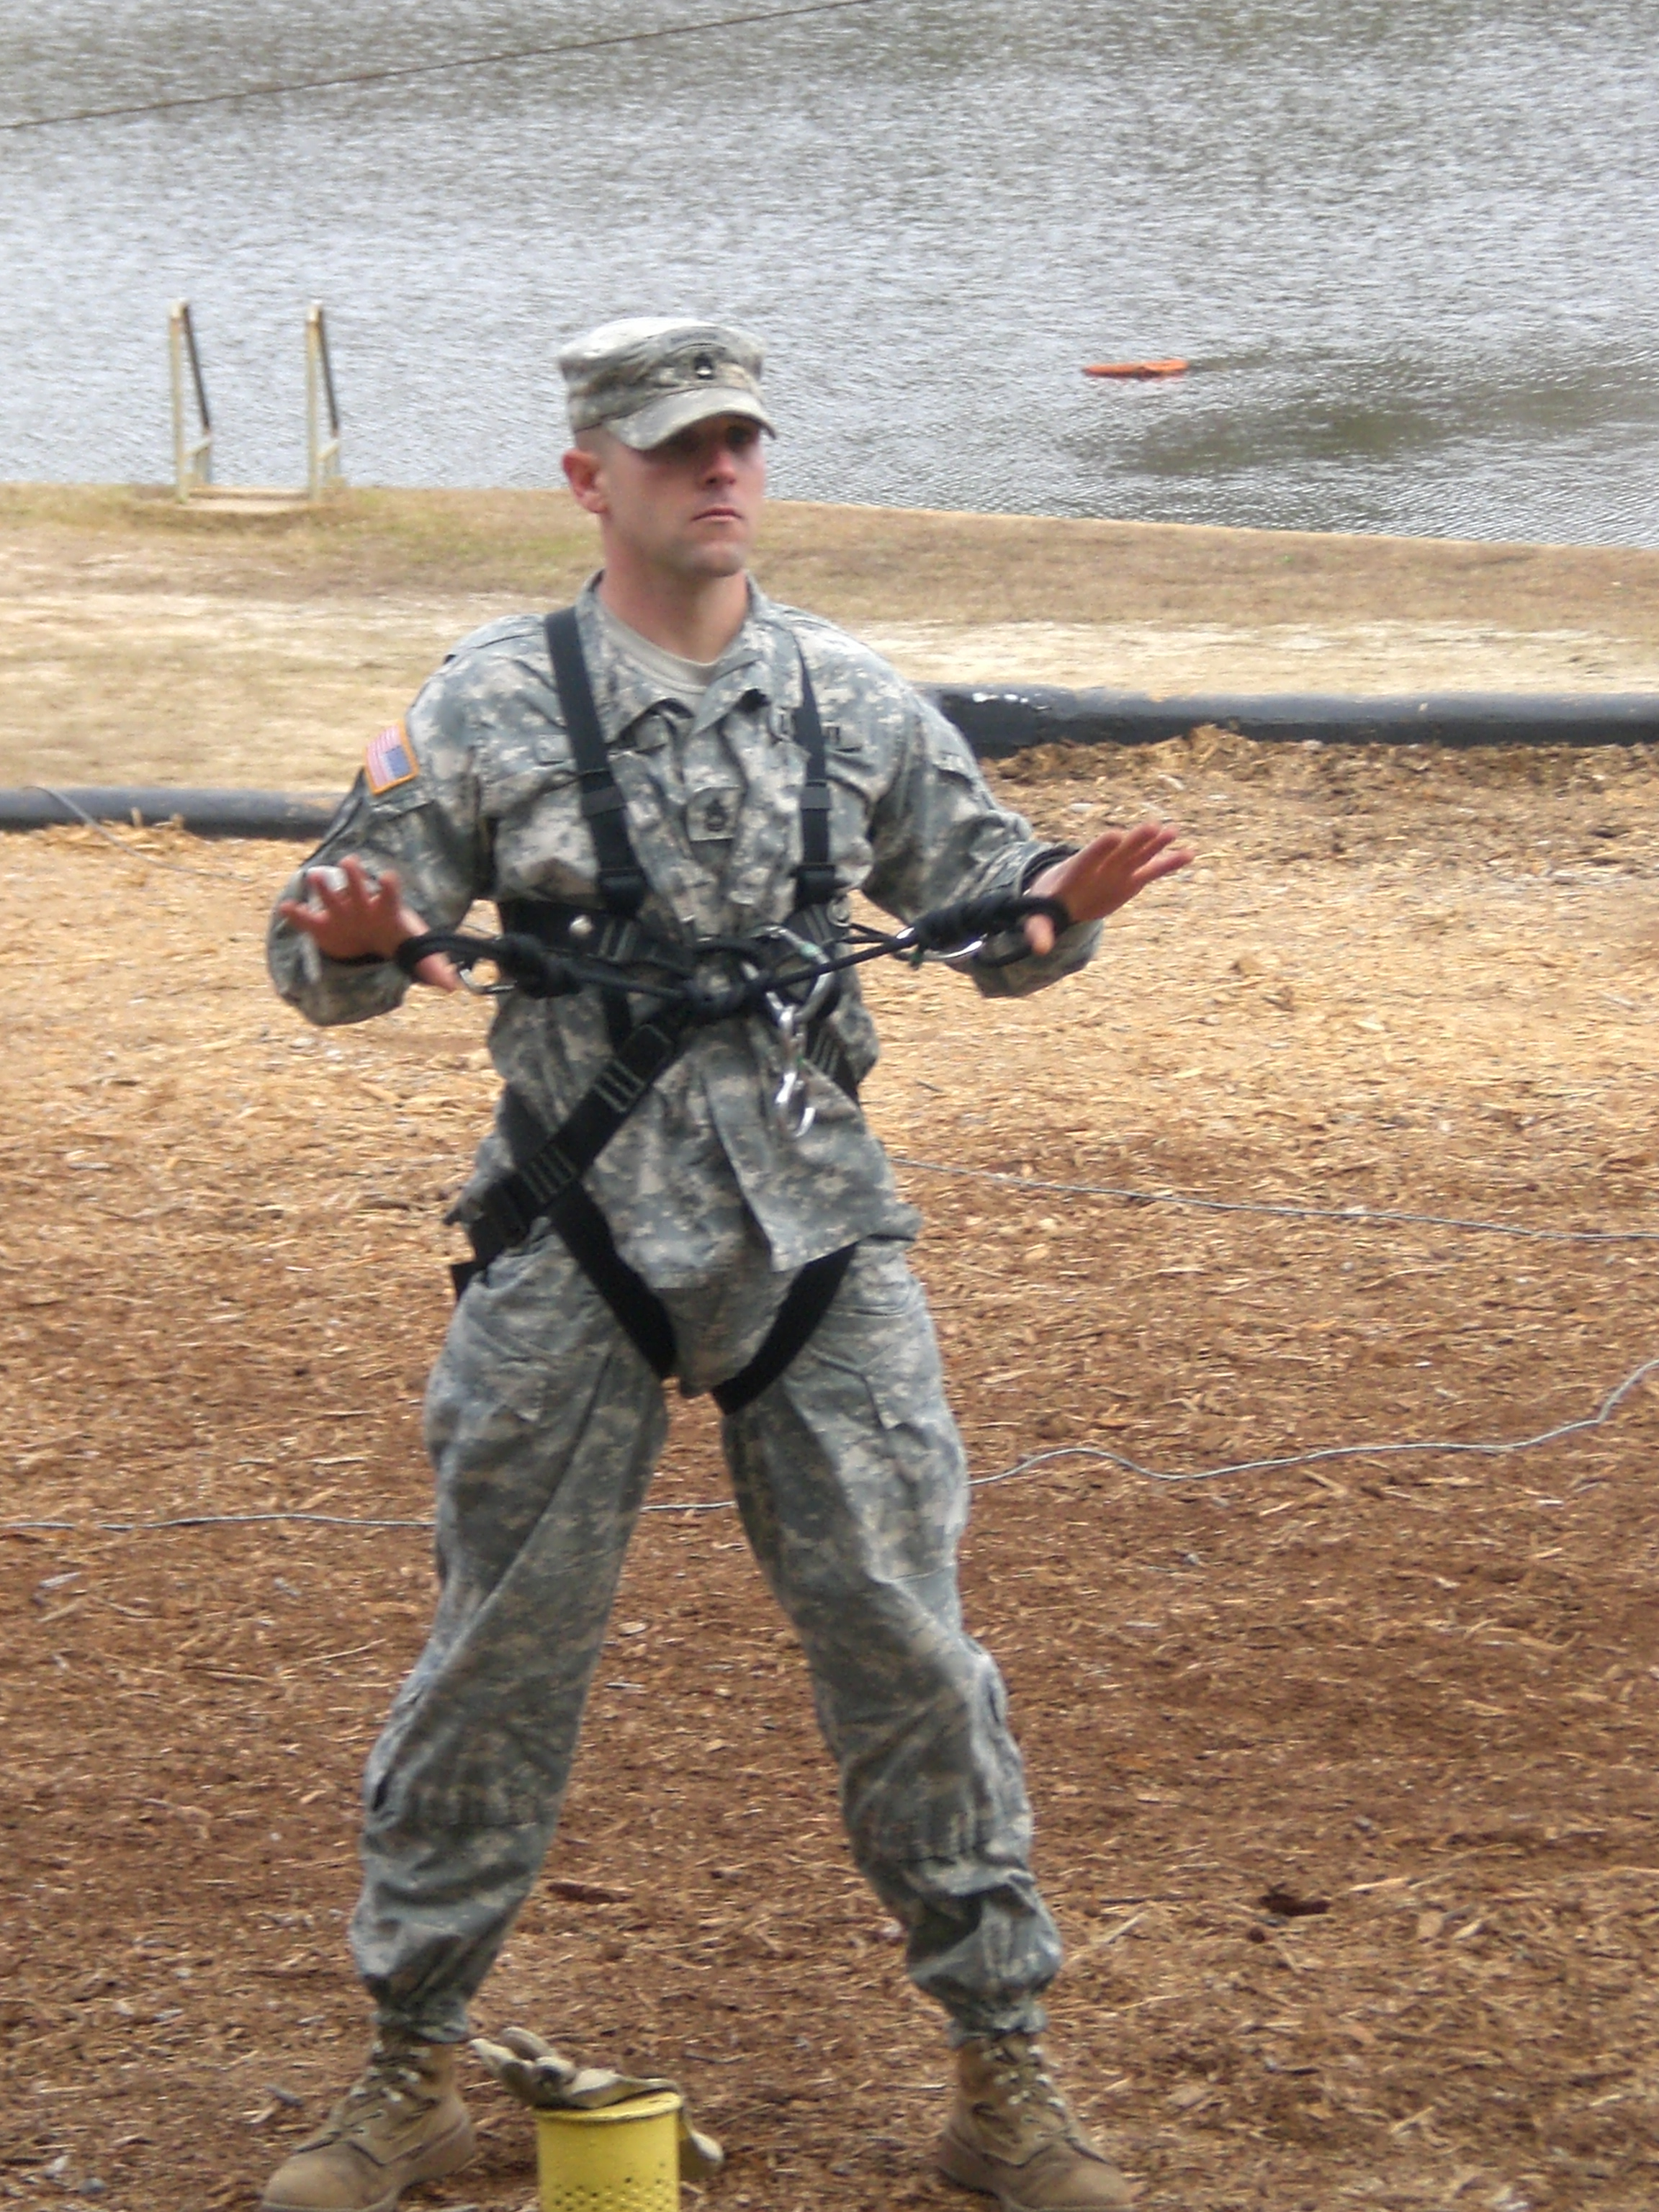 ranger observer take watches the cardio distance army sports heat